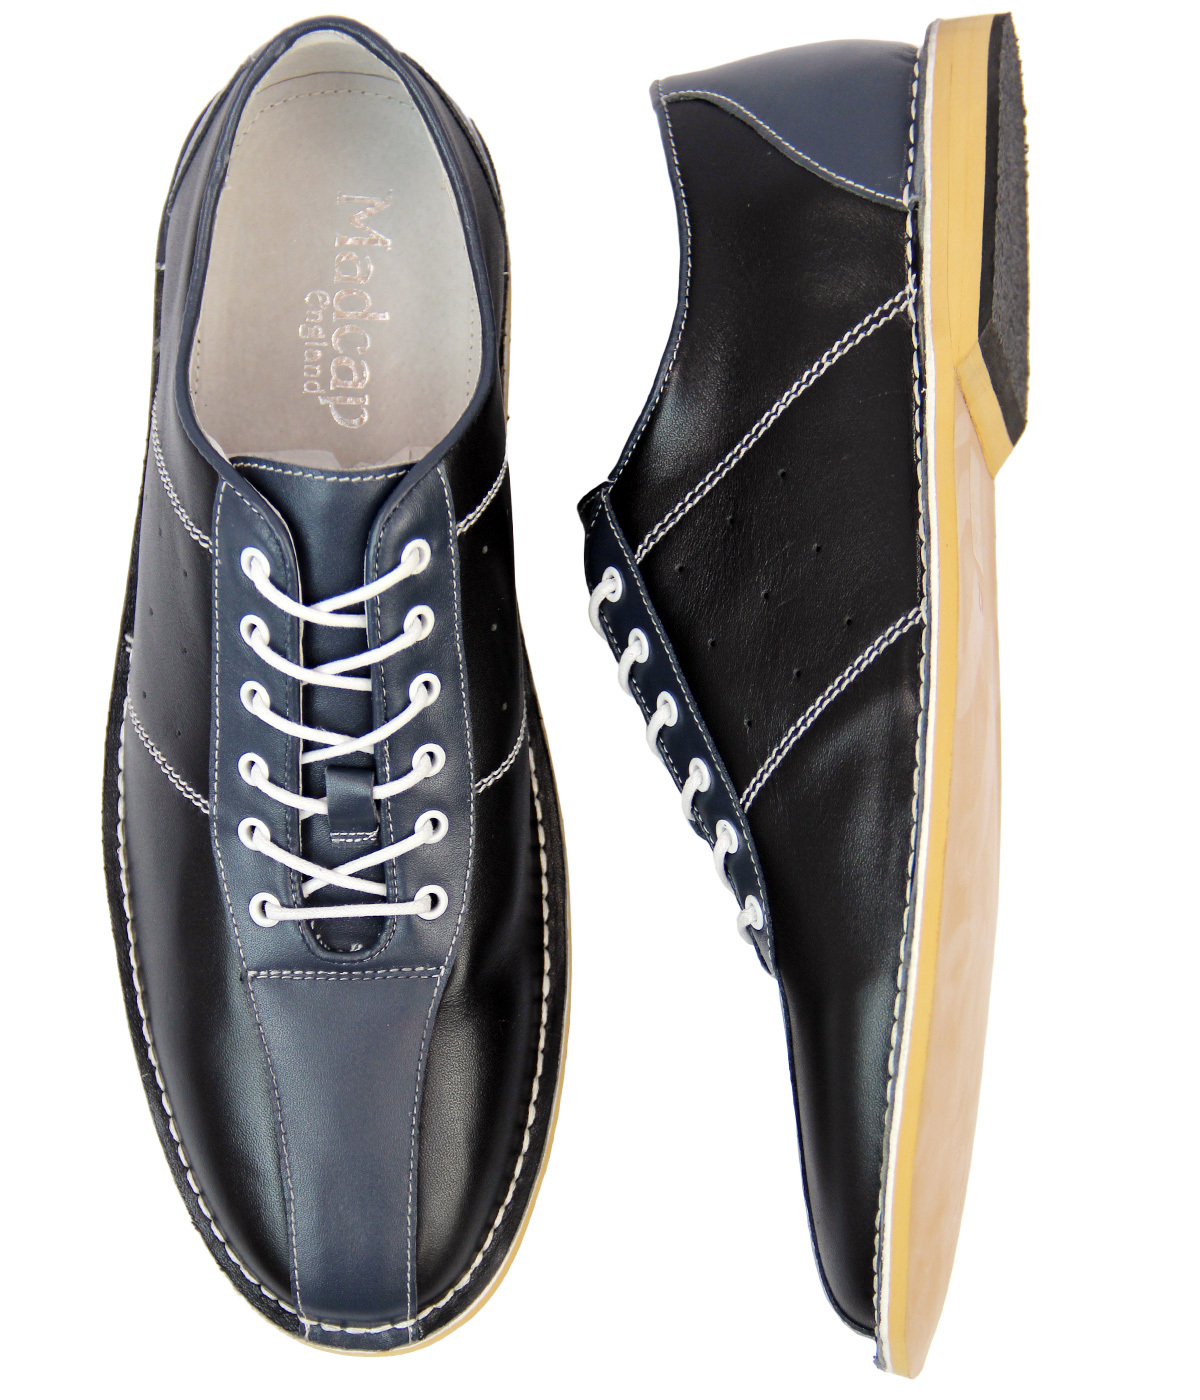 Black Friday Bowling Shoes